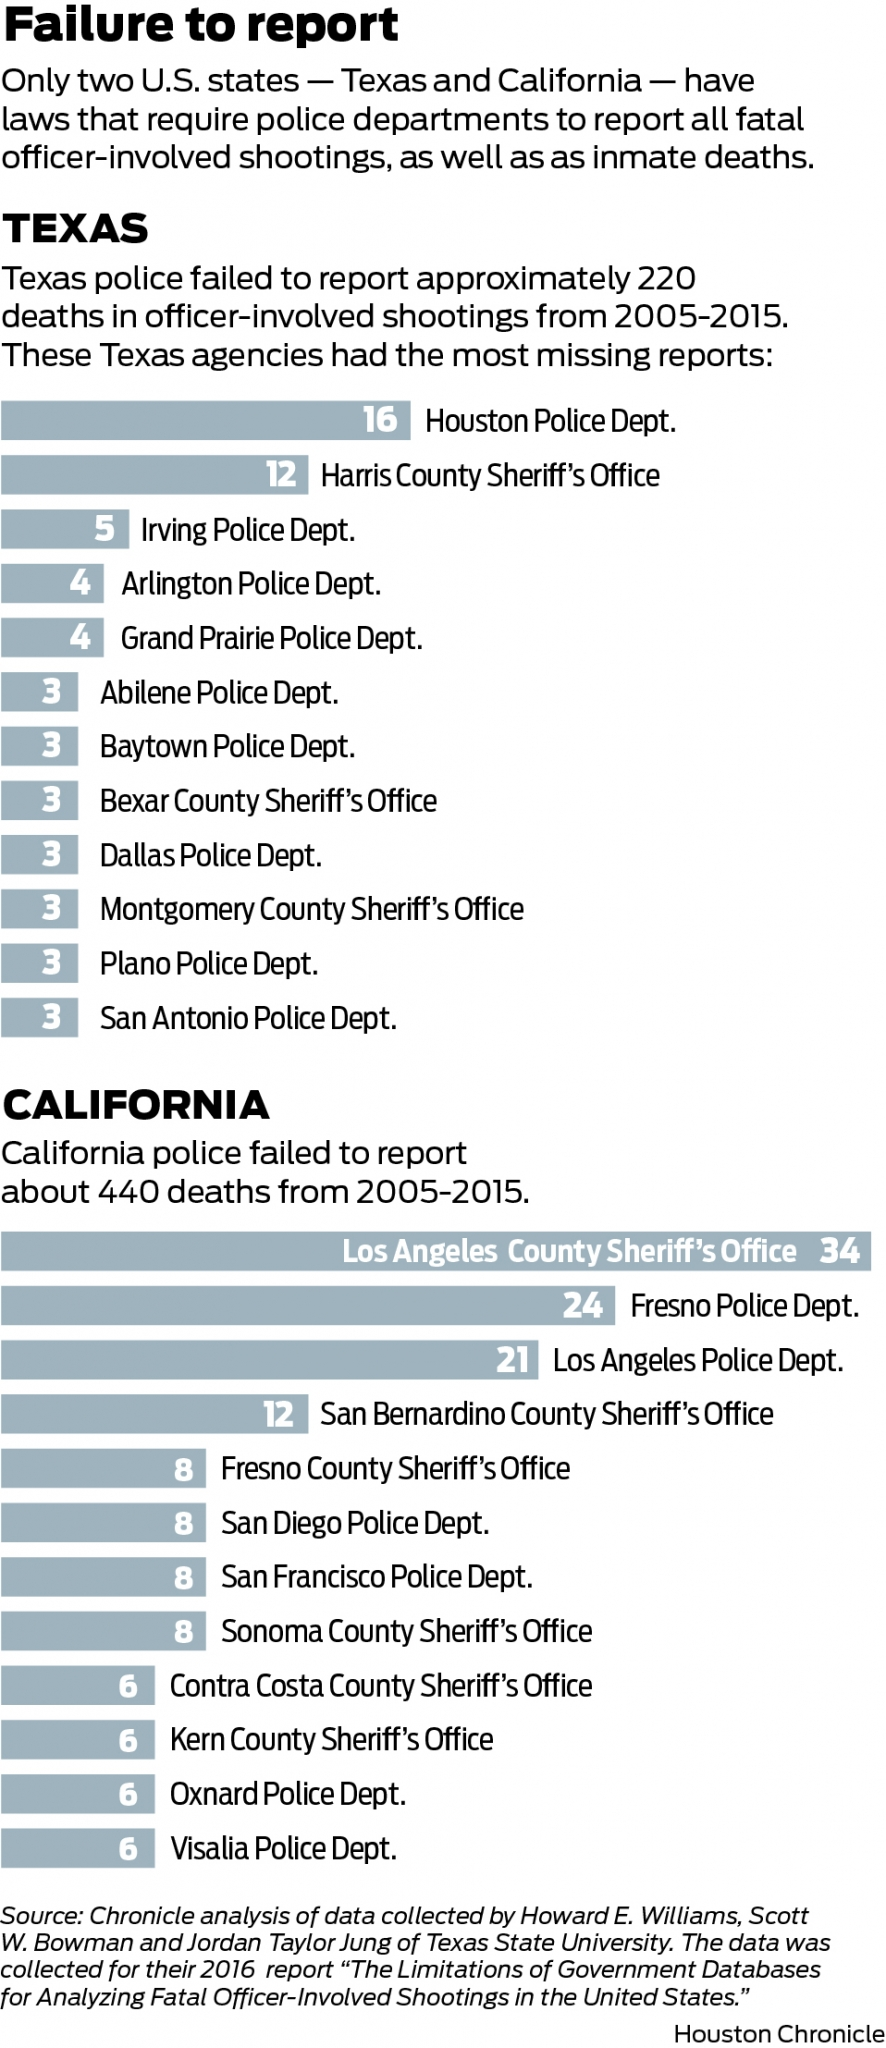 In Texas and California, police fail to report use-of-force